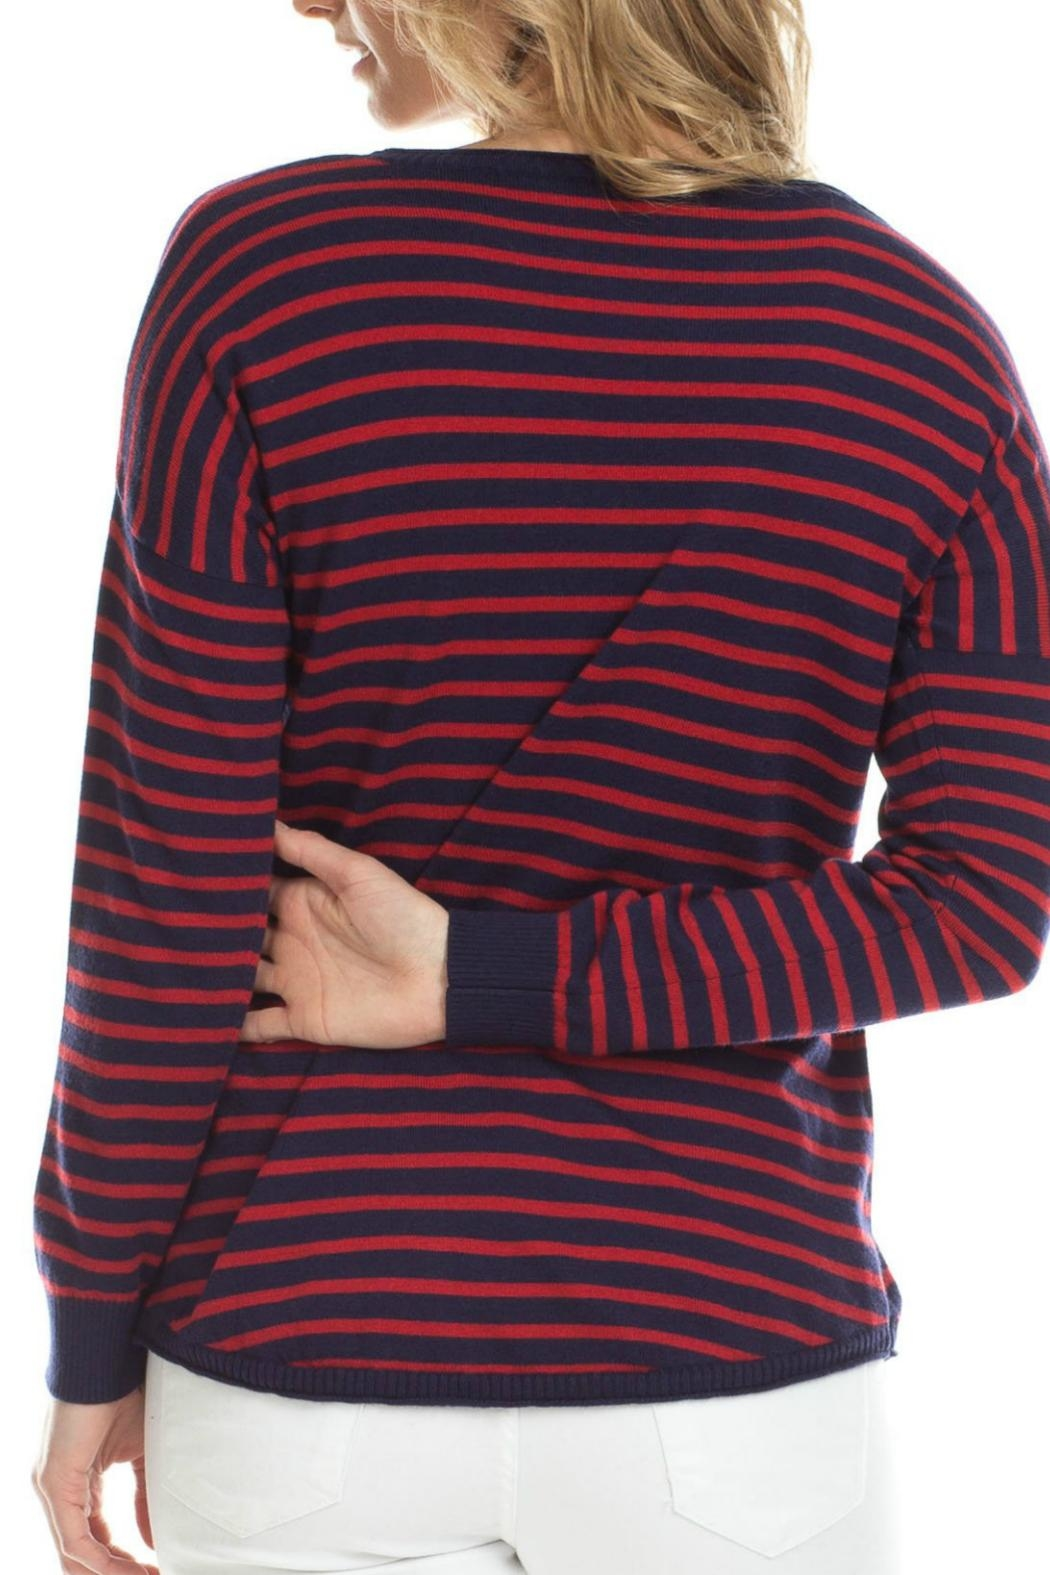 Duffield Lane Cashmere Blend Sweater - Front Full Image